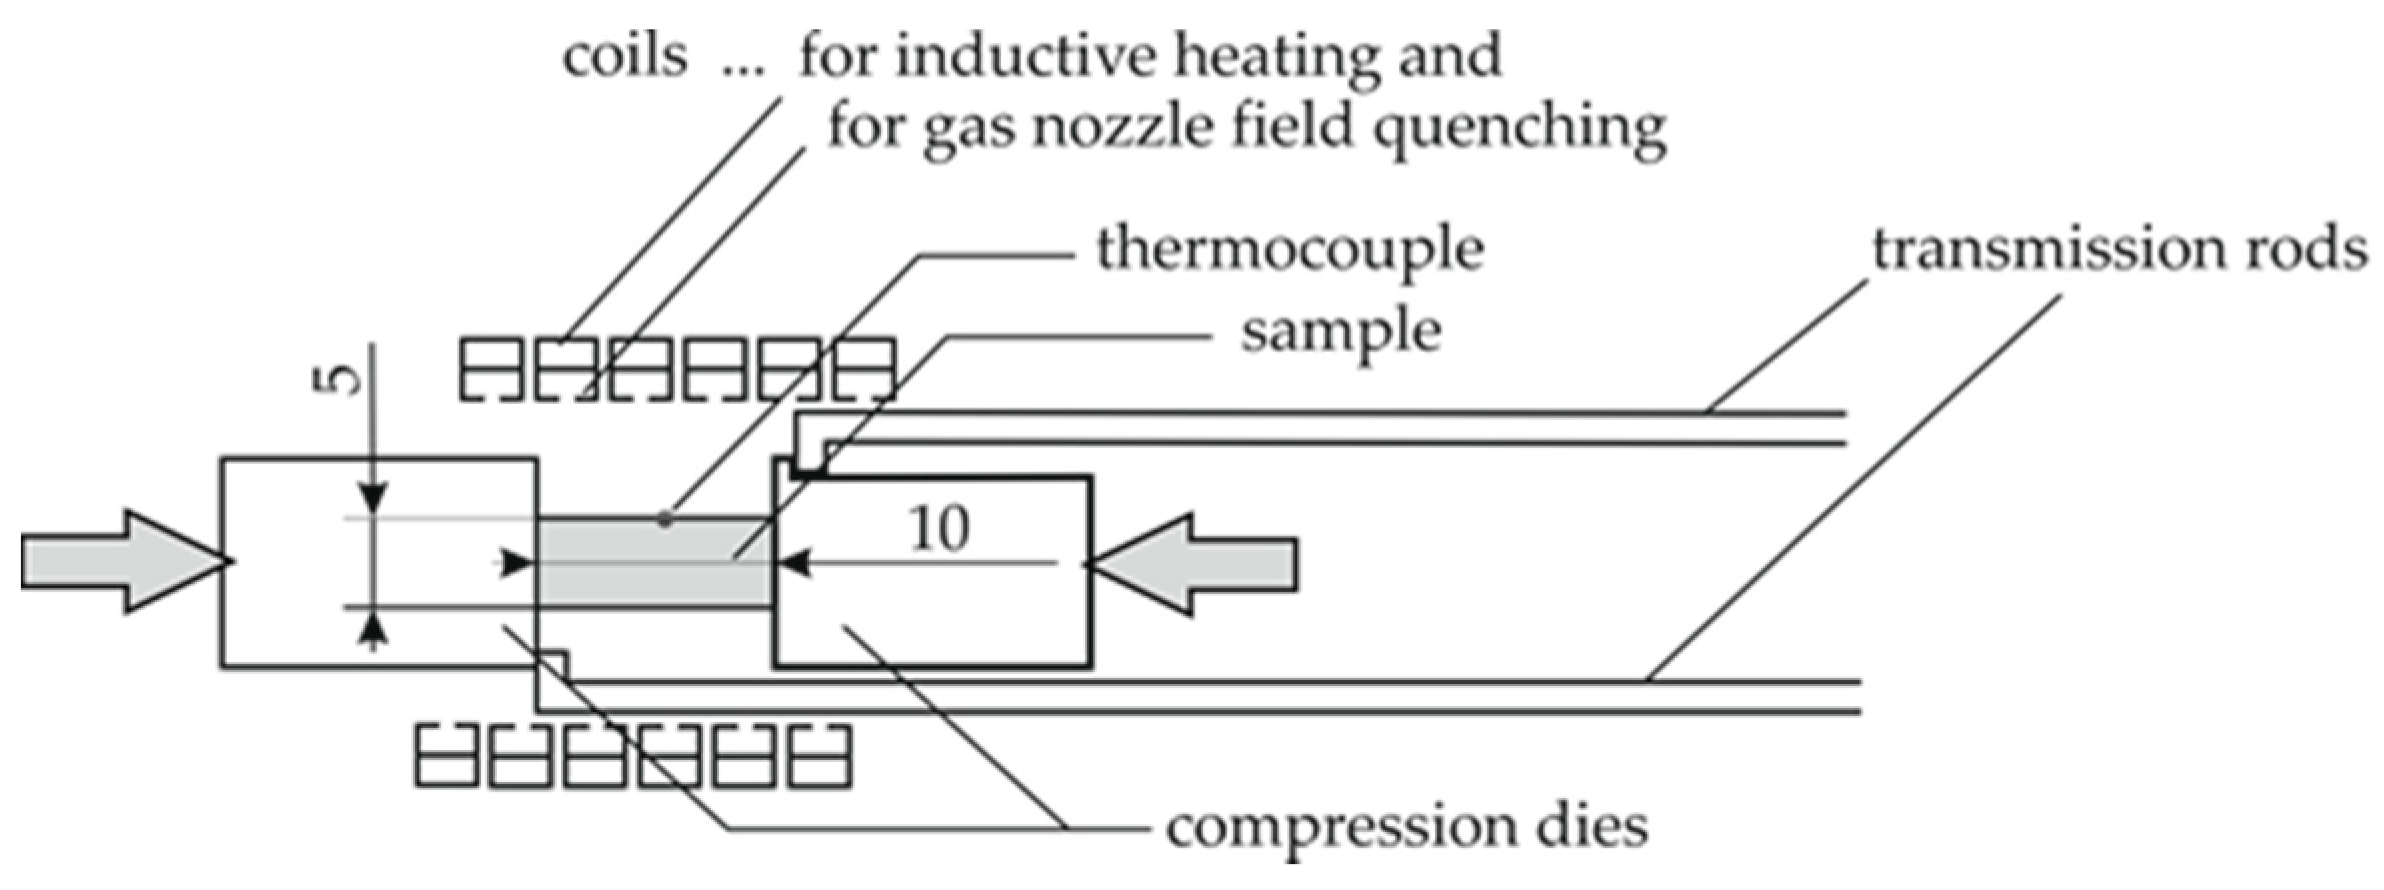 Materials Free Full Text Combined Calorimetry Thermo Mechanical Furnace Moreover Simple Induction Heater Circuit Additionally 11 01396 G003